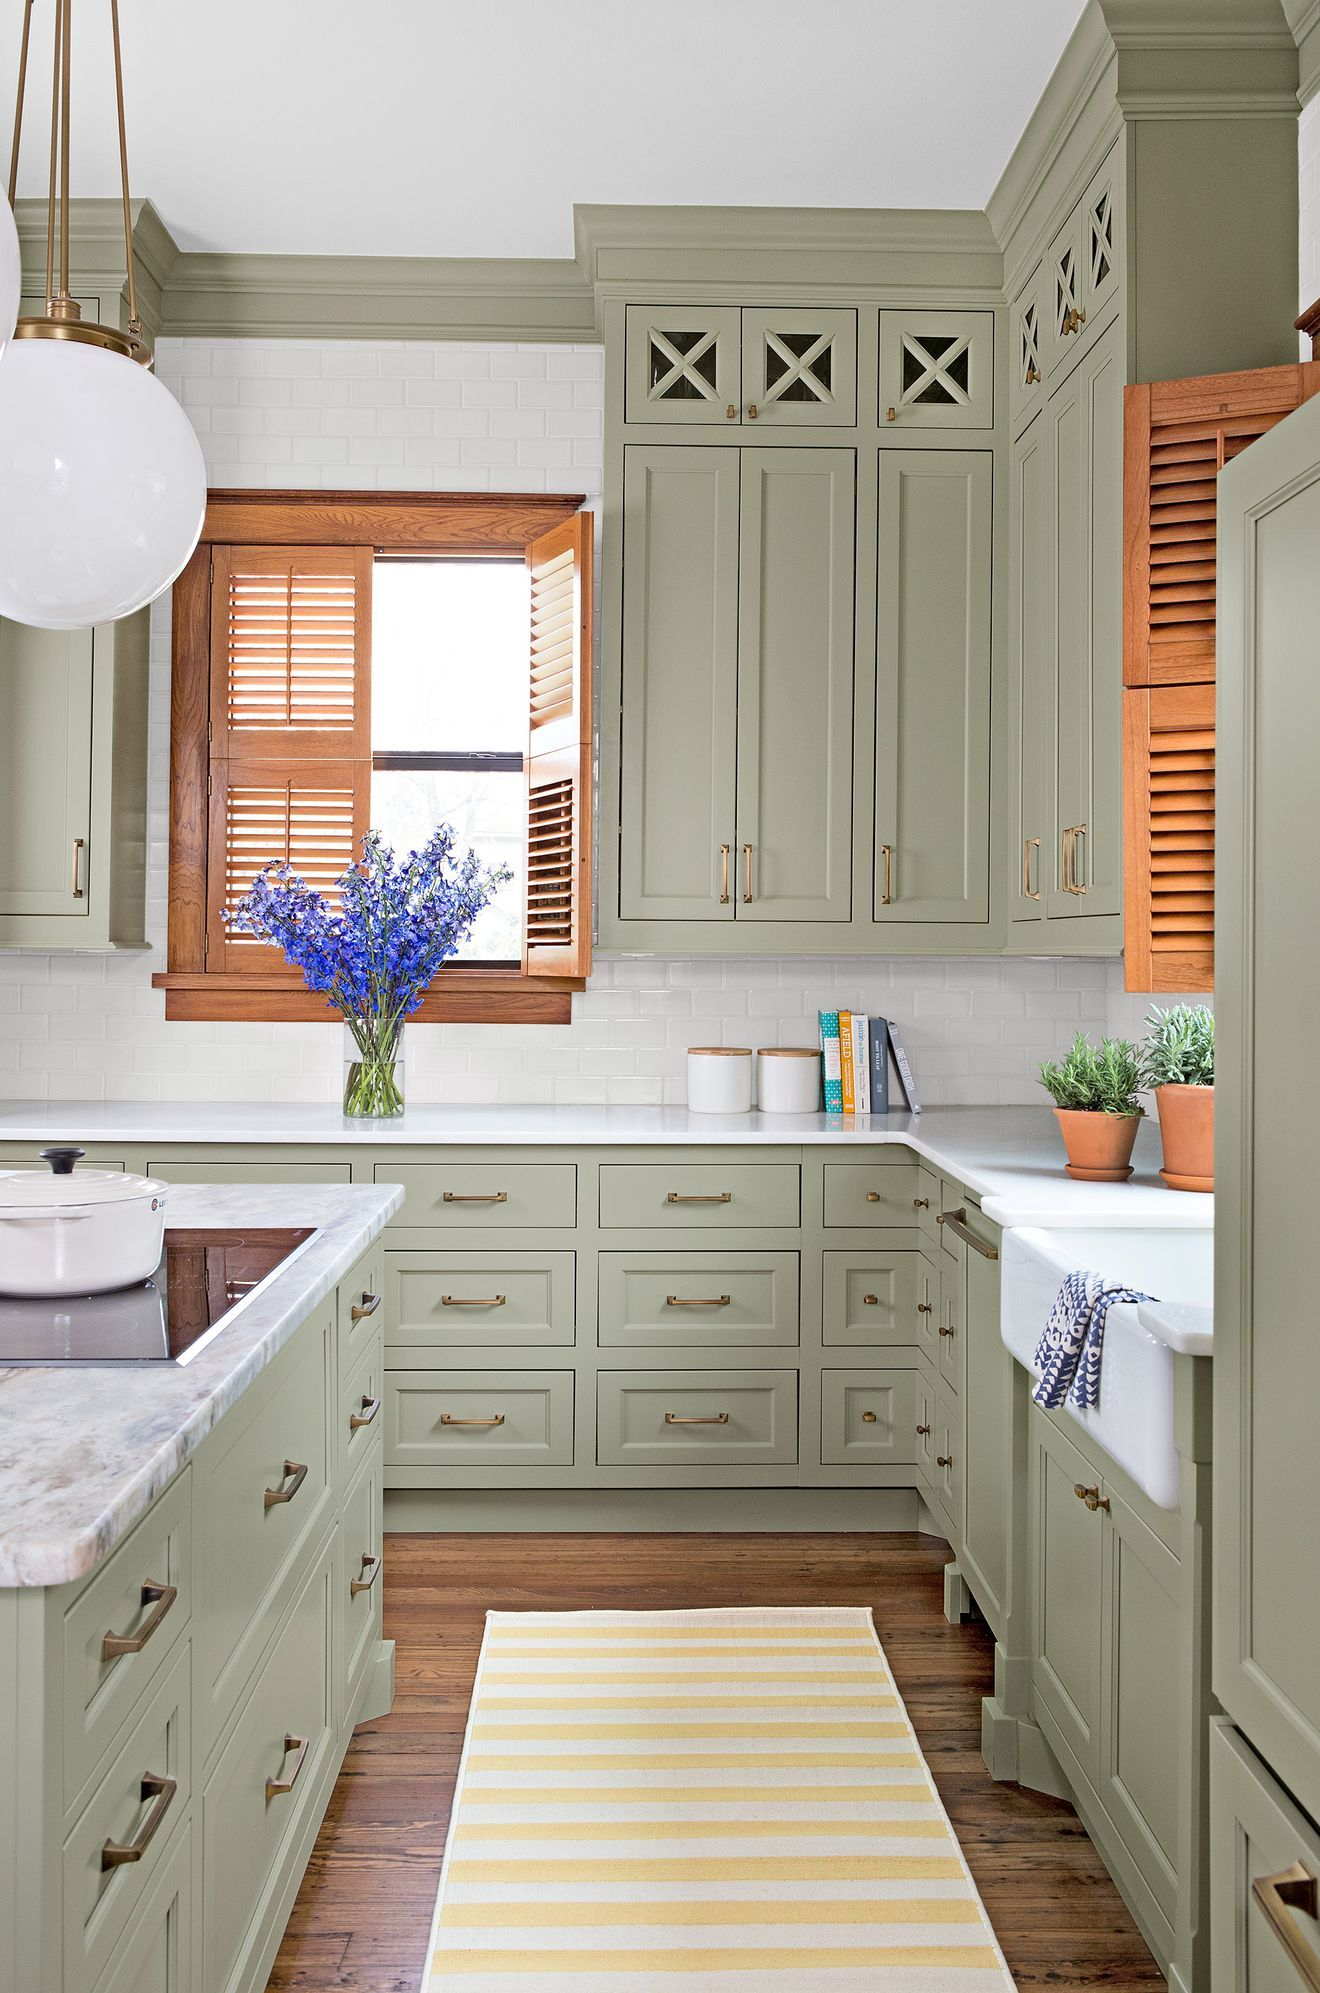 Before And After A Kitchen Well Done In 2020 Tall Kitchen Cabinets Kitchen Cabinets Painted Grey Kitchen Design